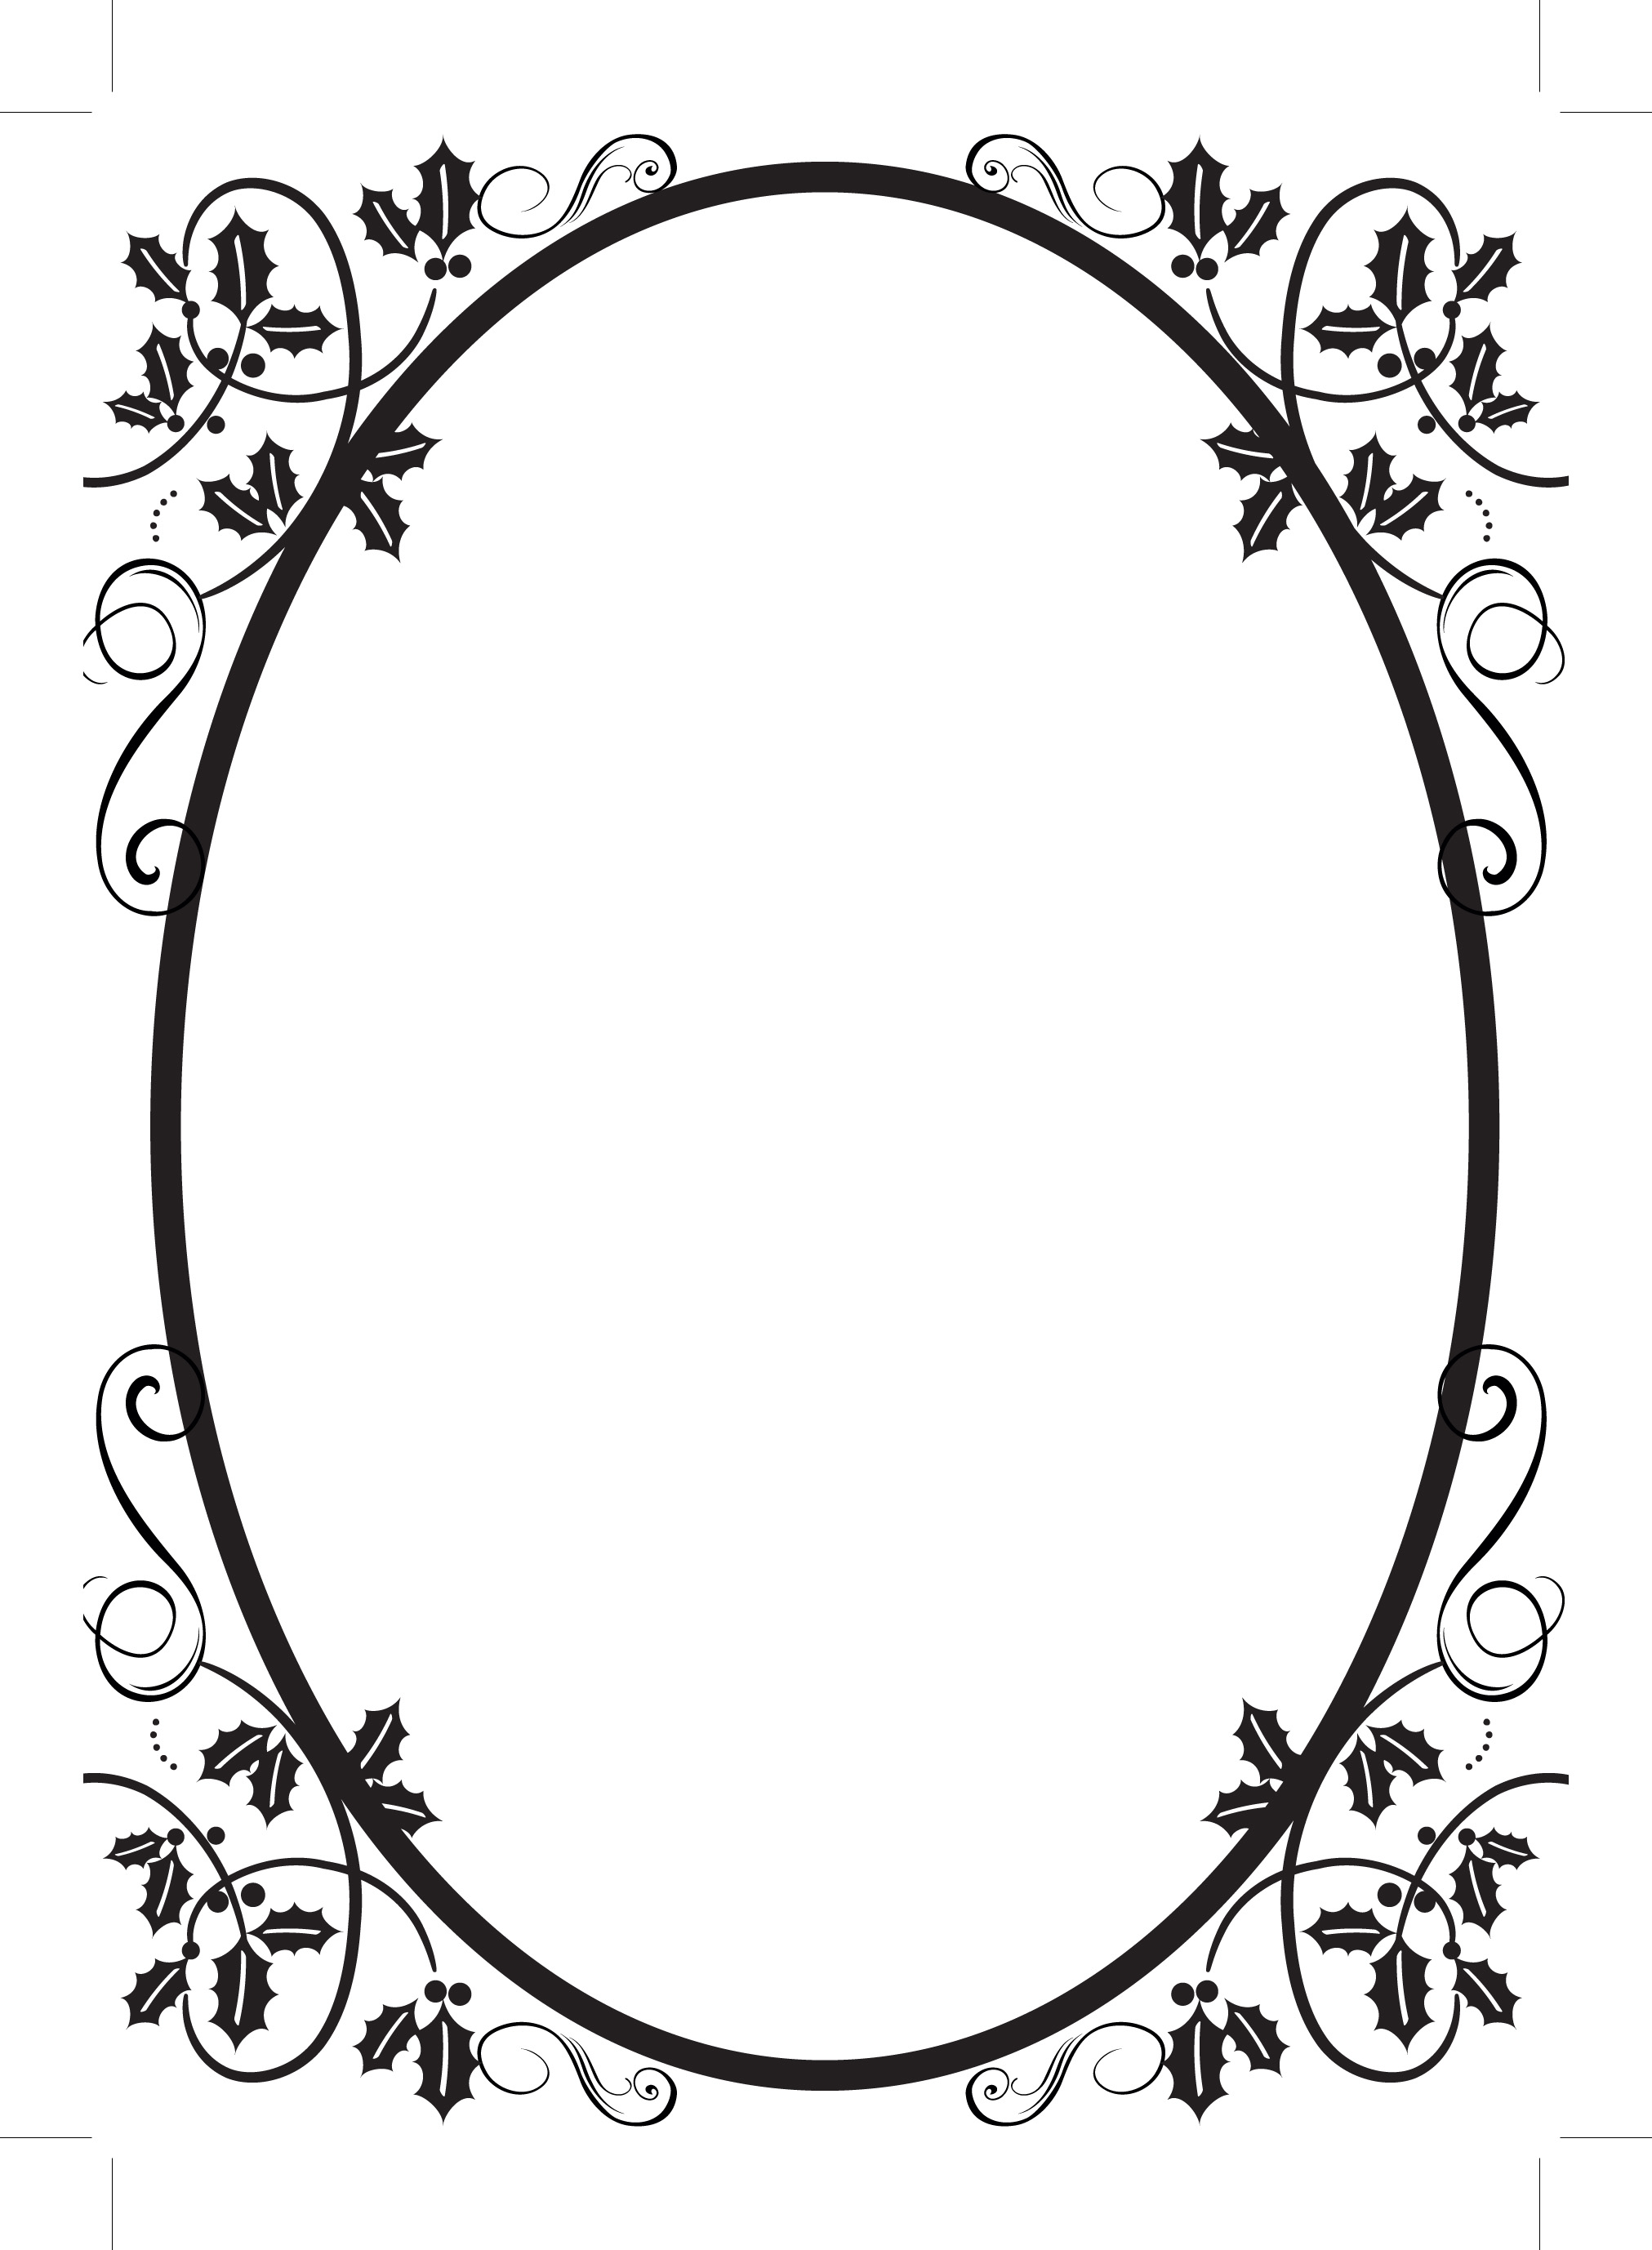 Oval Frame Clipart | Free download best Oval Frame Clipart on ...